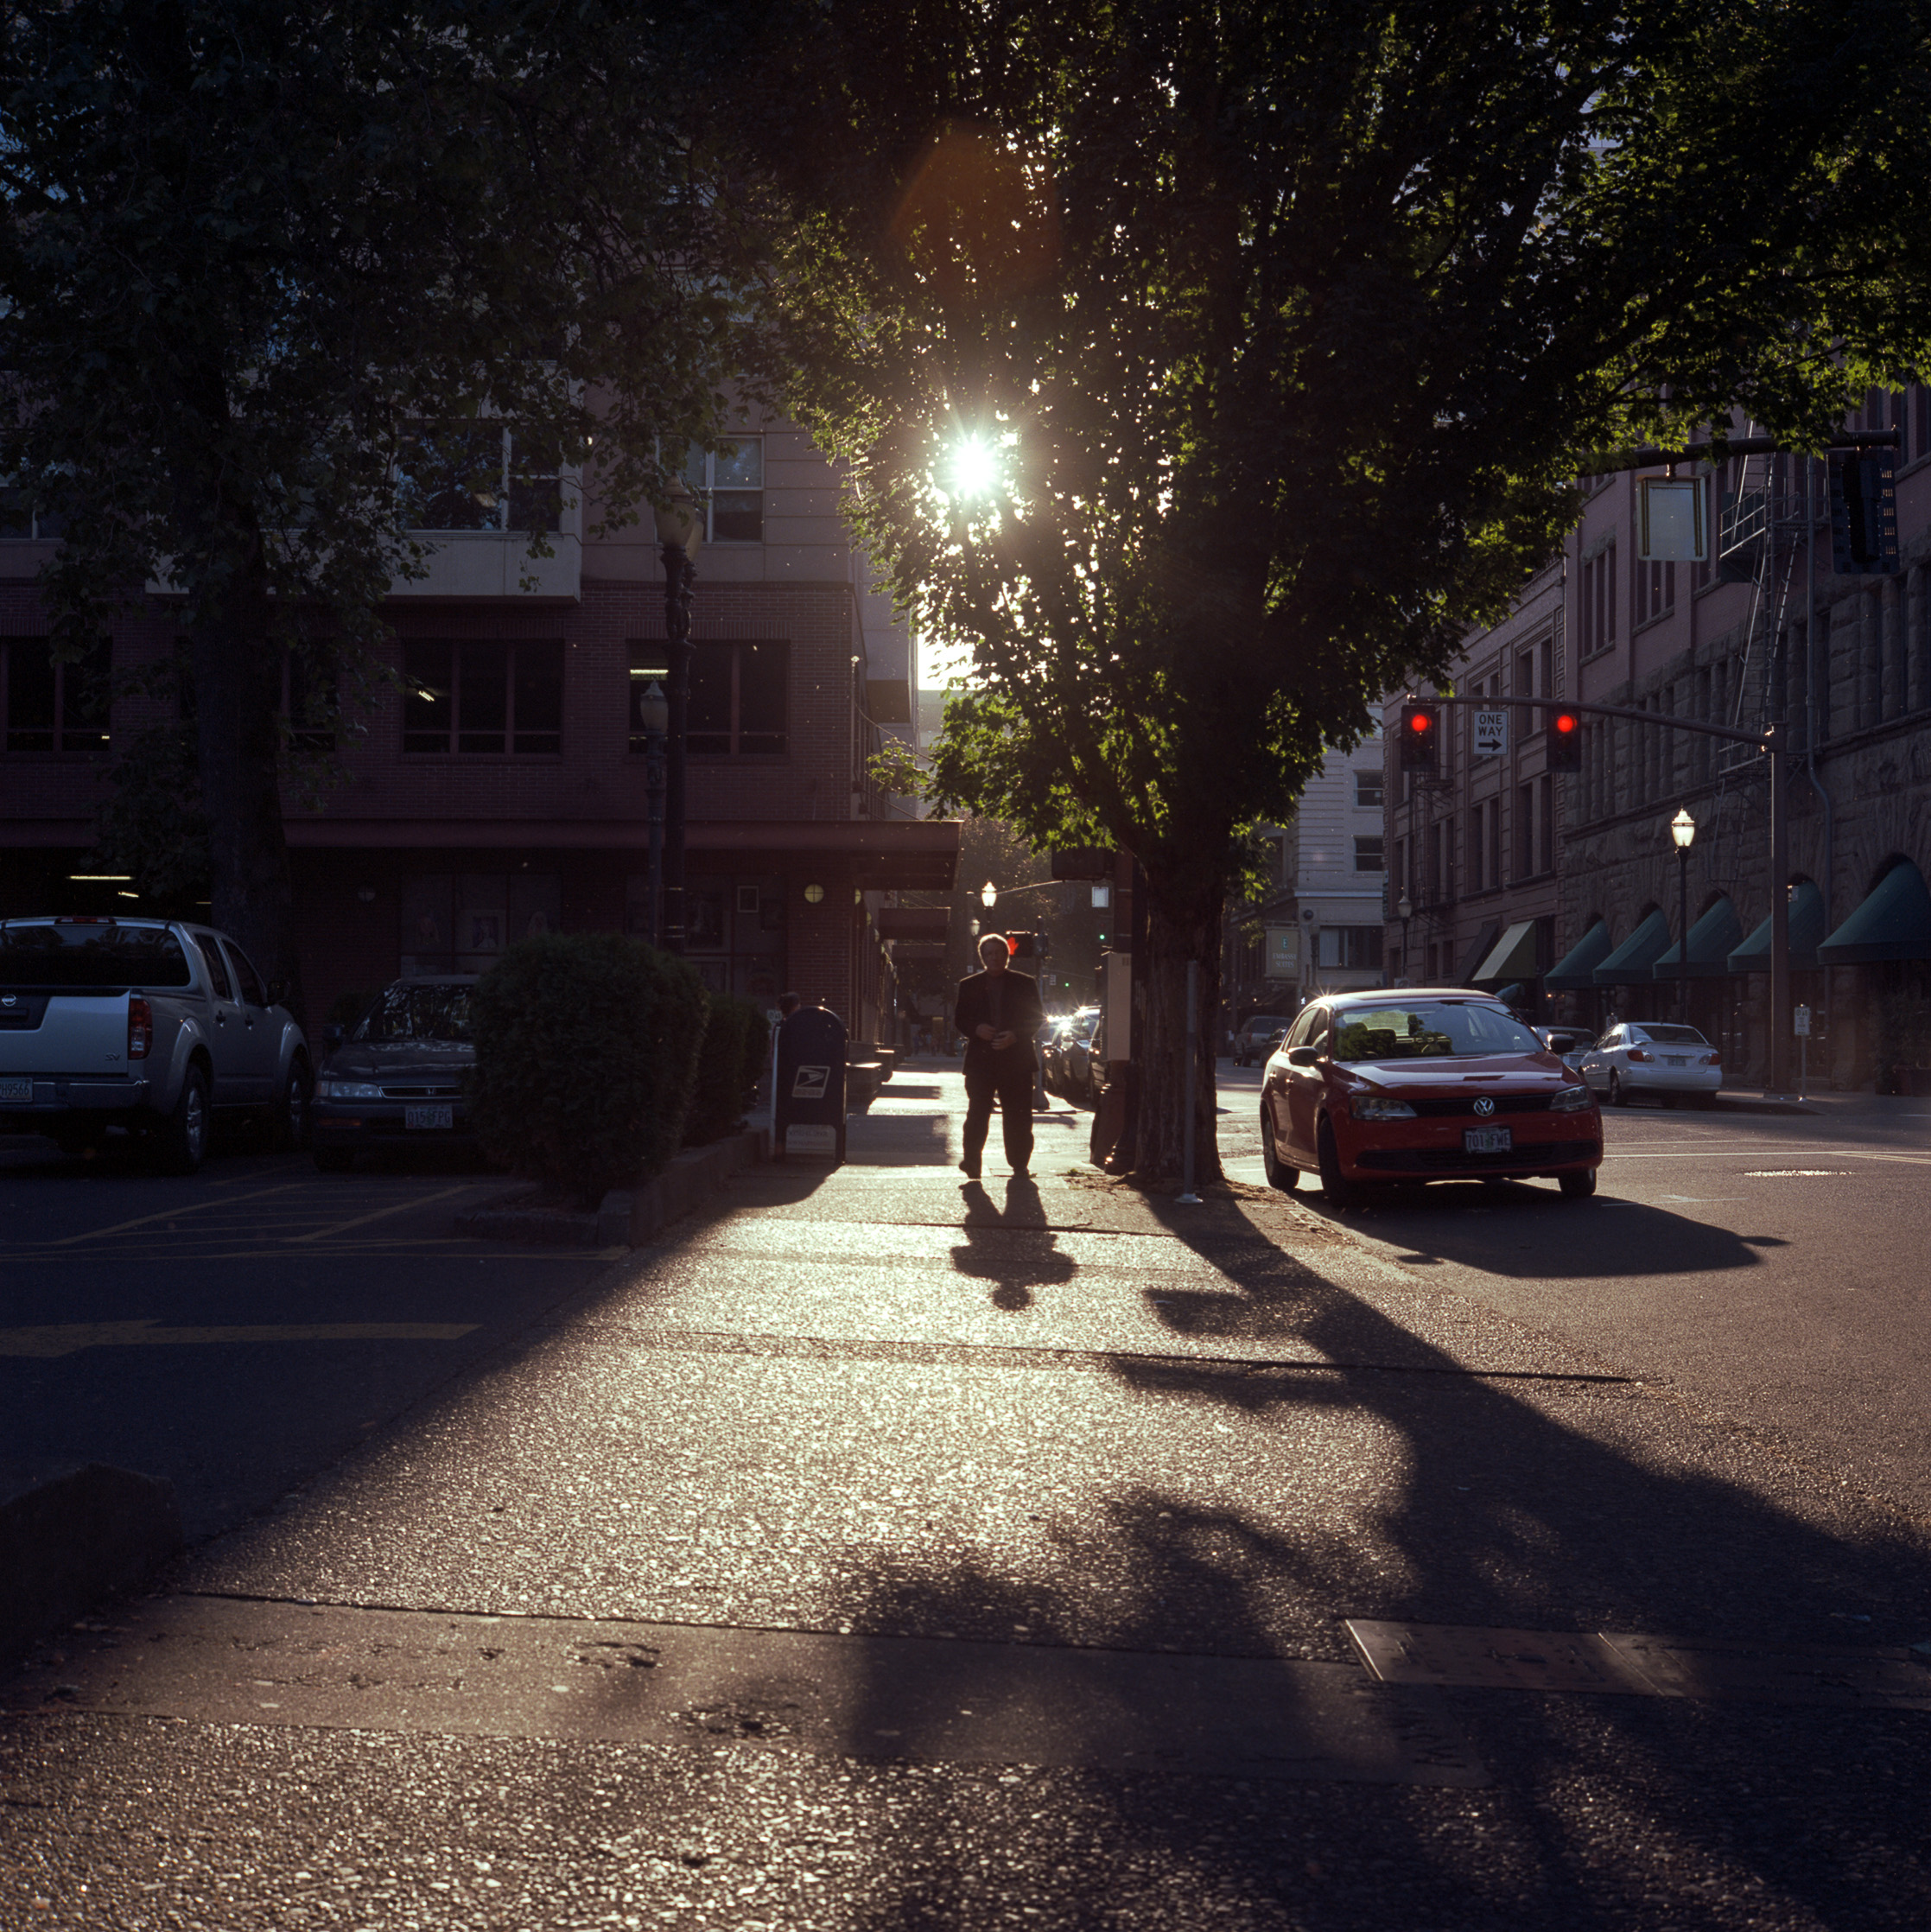 I liked the way the sun was bathing the sidewalk, so I snapped a shot of a gentleman's silhouette as he was walking towards us.